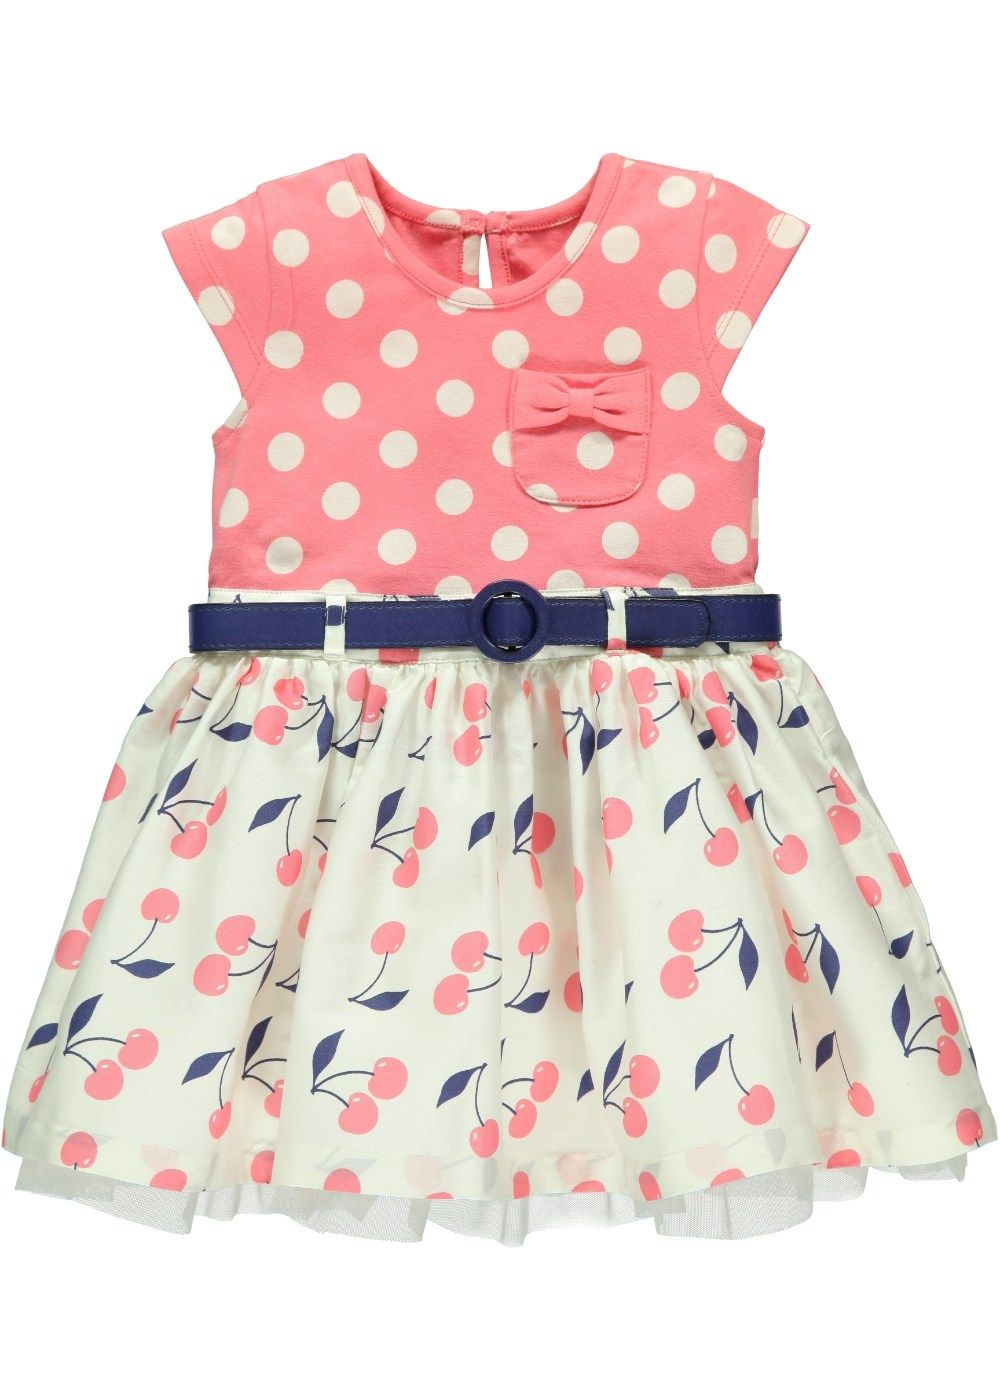 Girls Spot Print Dress - Matalan | kids fashion-girls | Pinterest ...